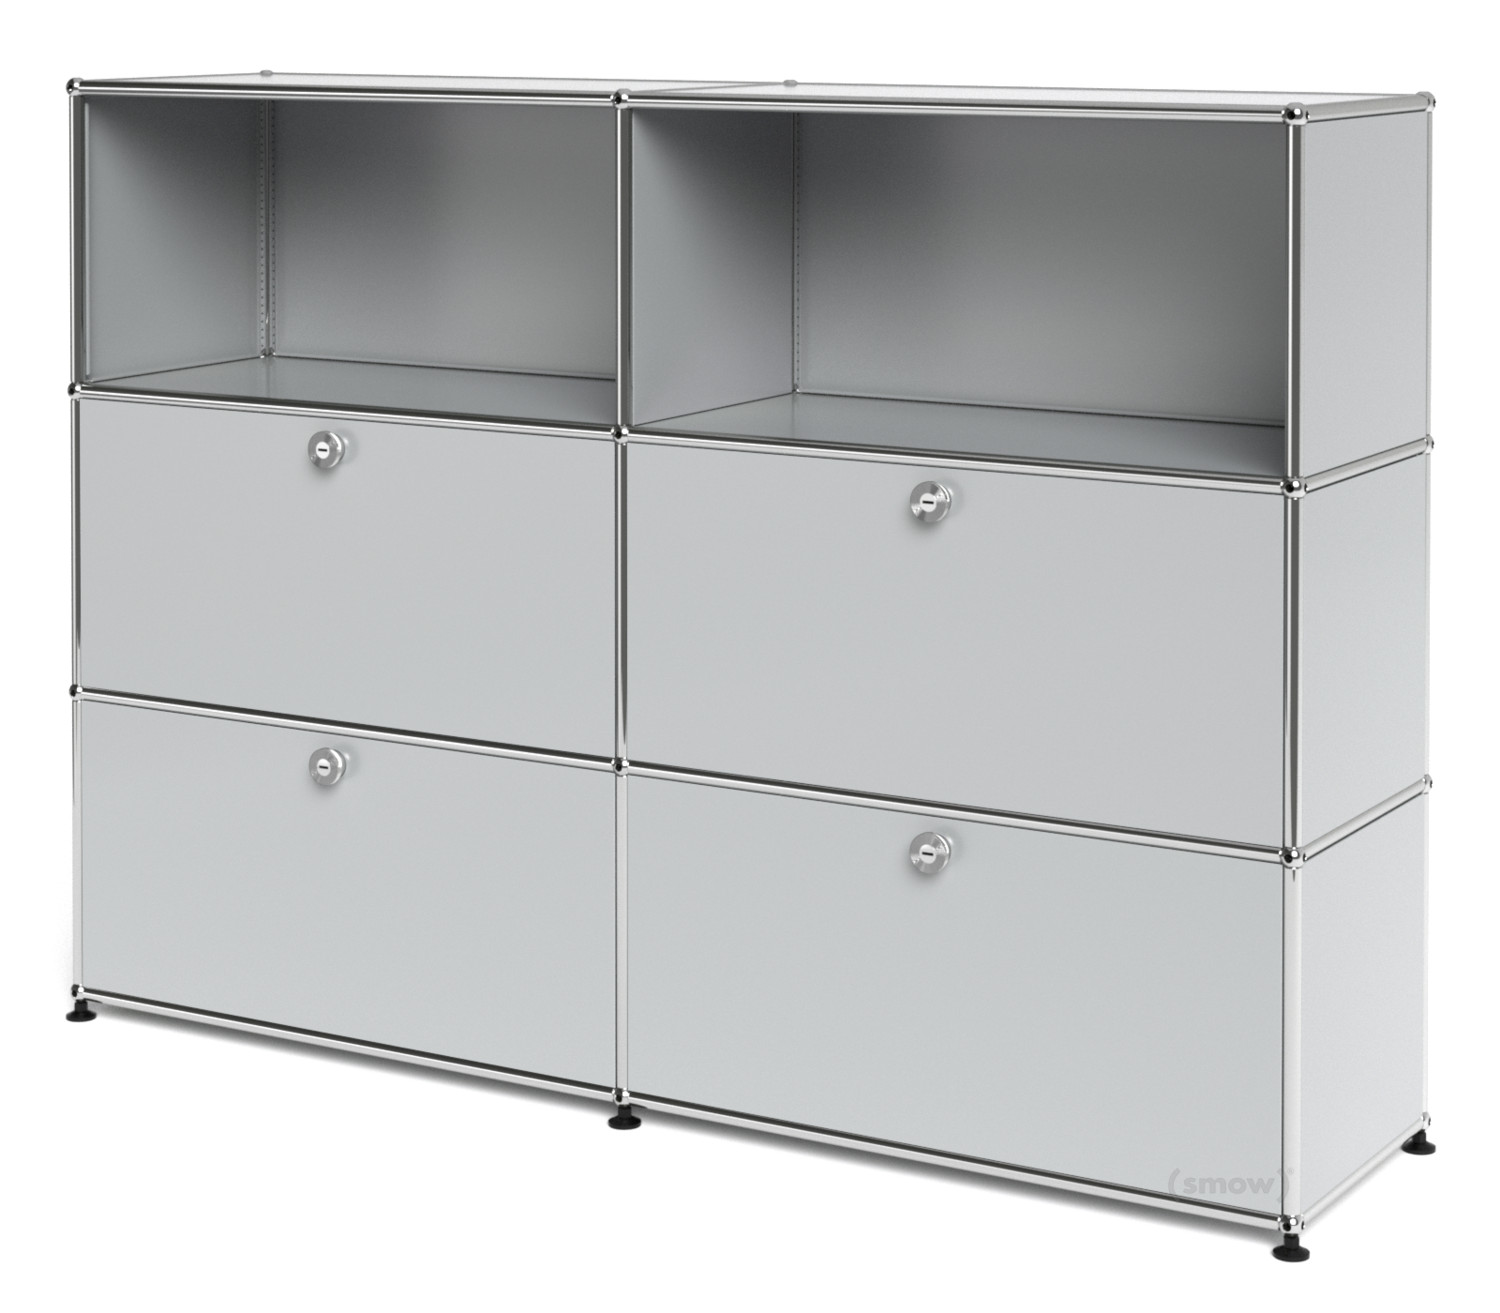 usm haller highboard l mit 4 klappen lichtgrau ral 7035. Black Bedroom Furniture Sets. Home Design Ideas